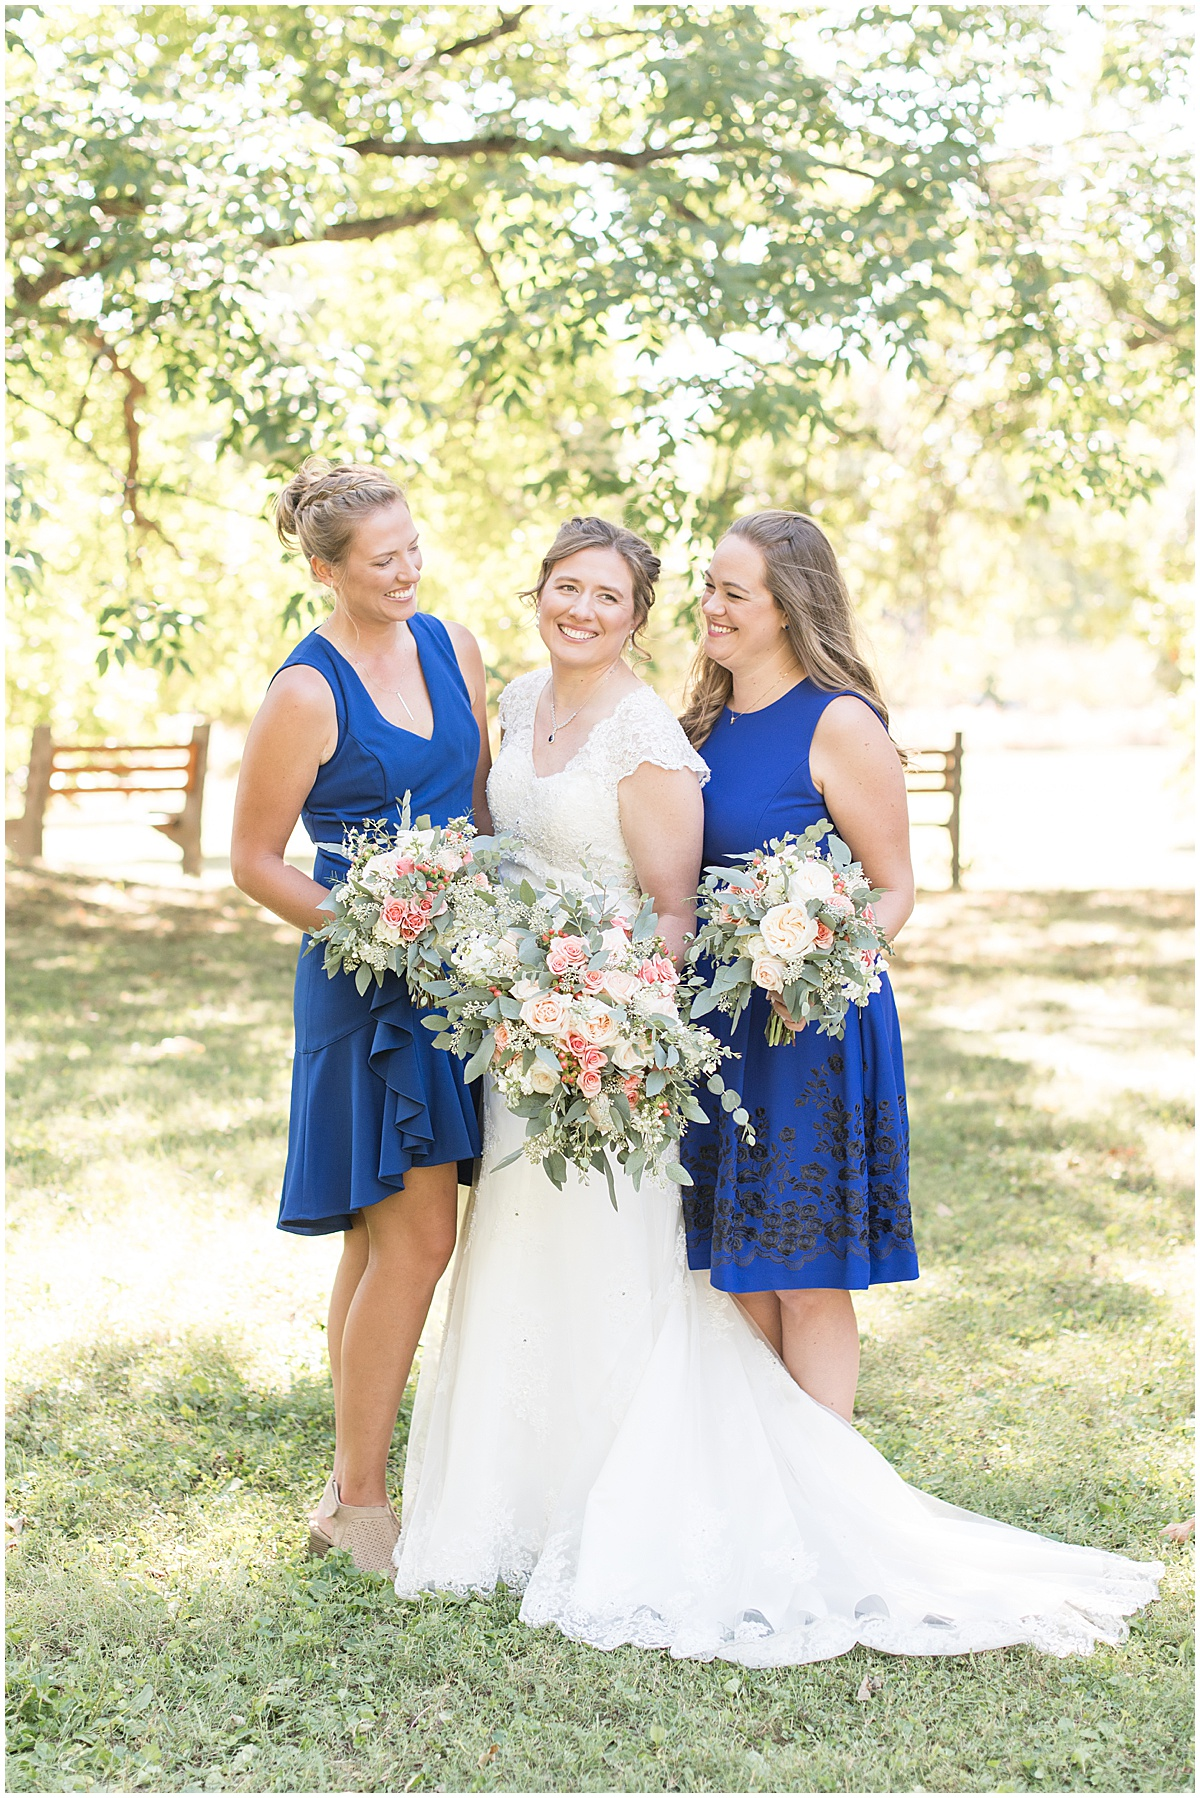 Bridesmaids before intimate wedding at Holliday Park in Indianapolis by Victoria Rayburn Photography